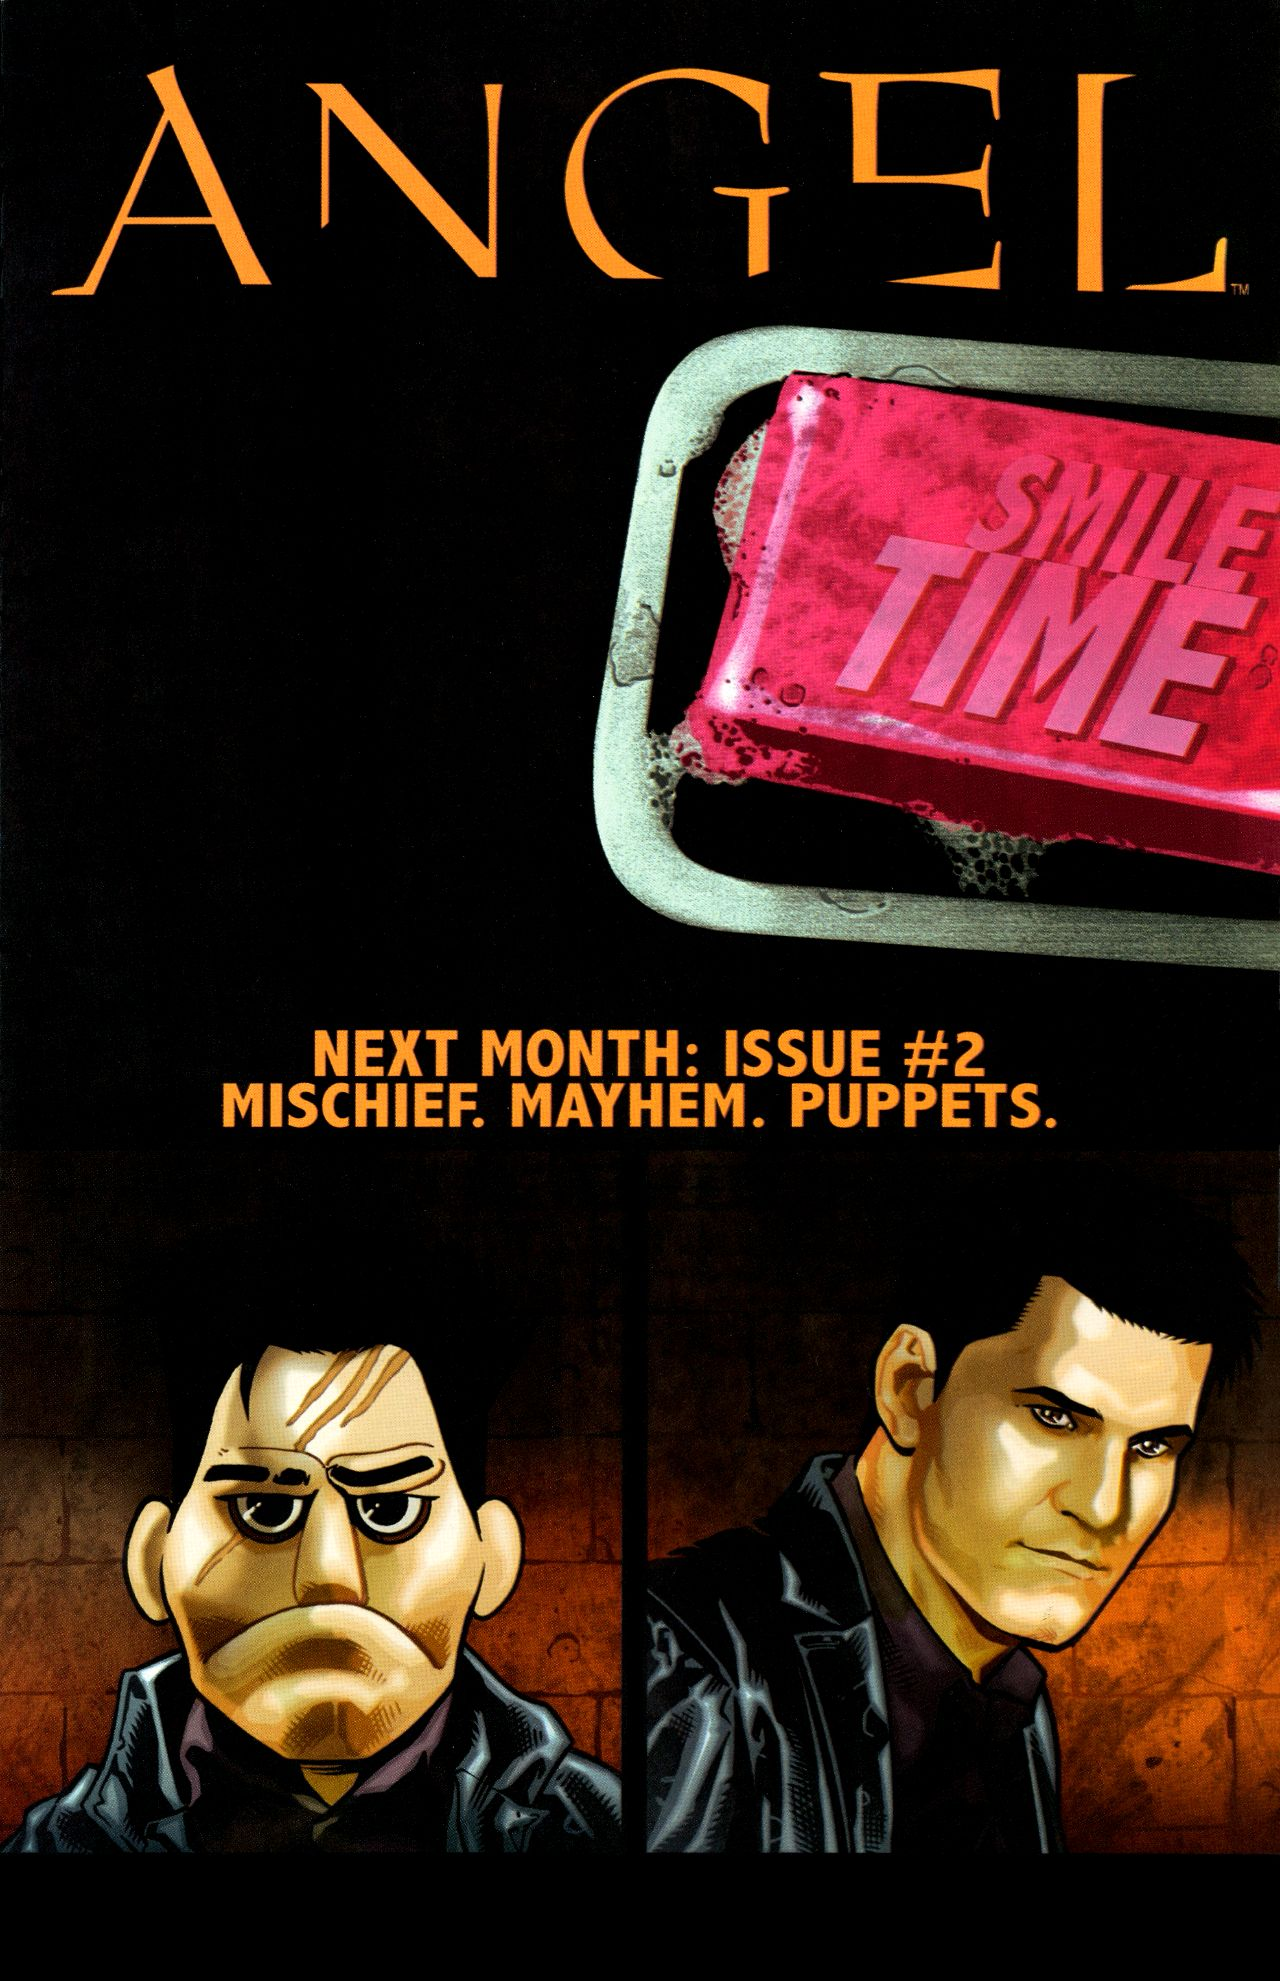 Read online Angel: Smile Time comic -  Issue #1 - 24